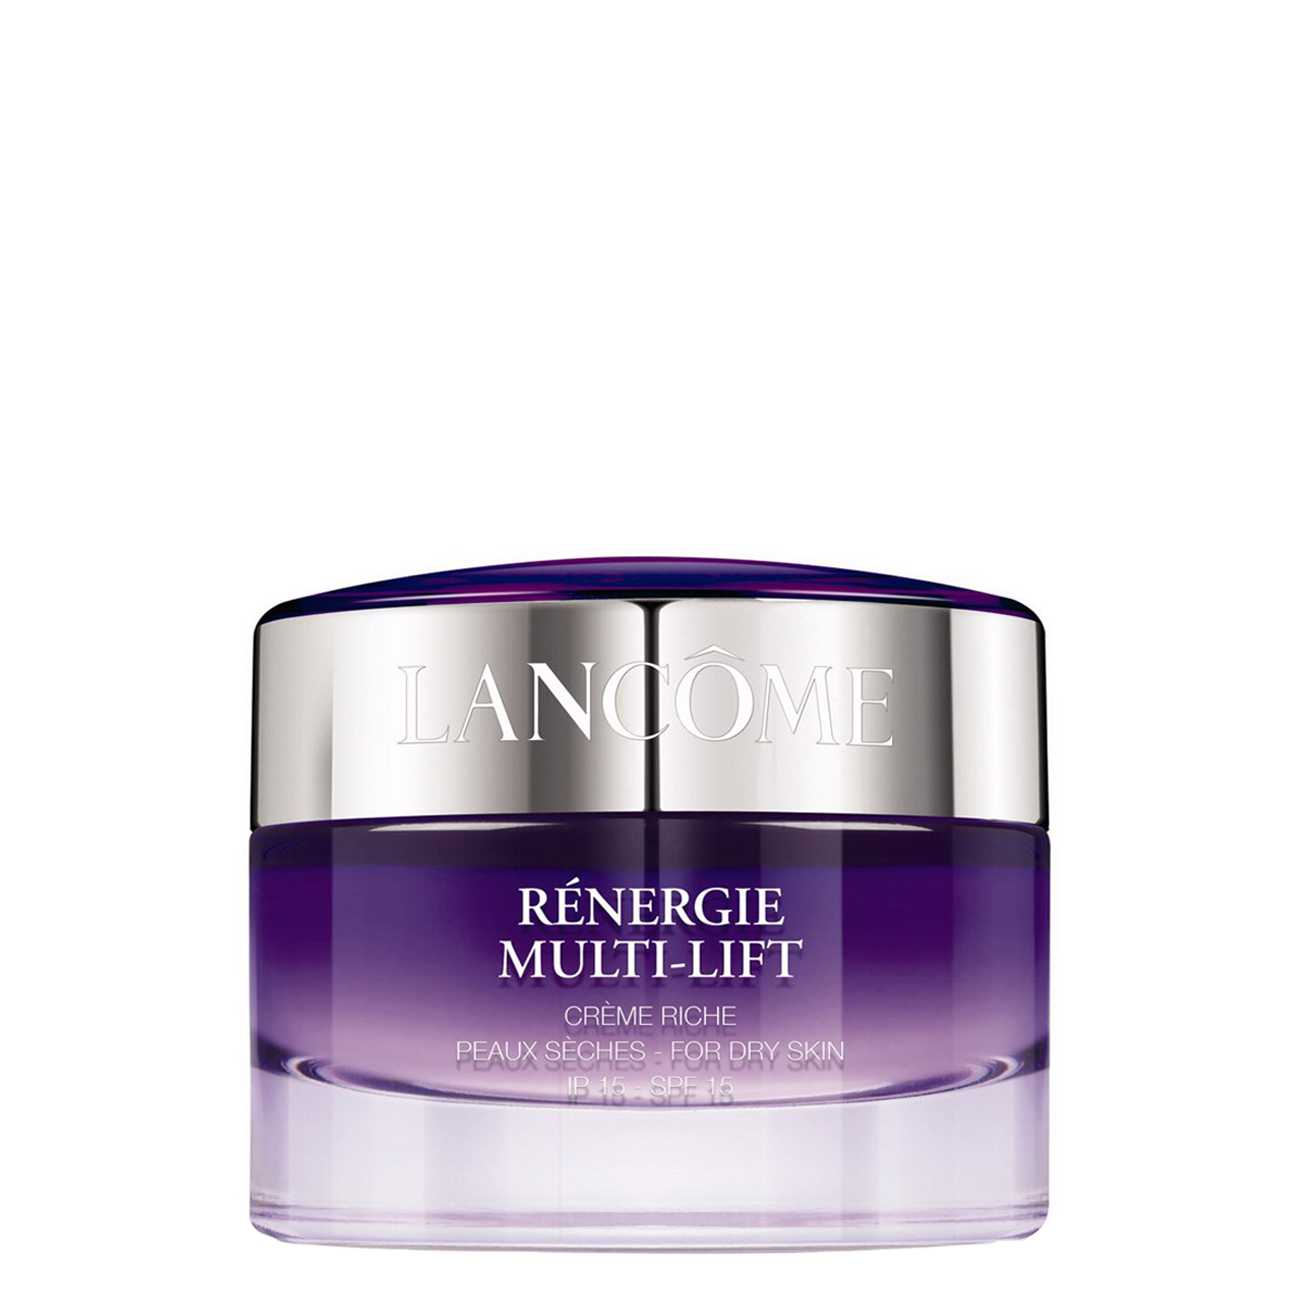 RENERGIE MULTI-LIFT 50 ML